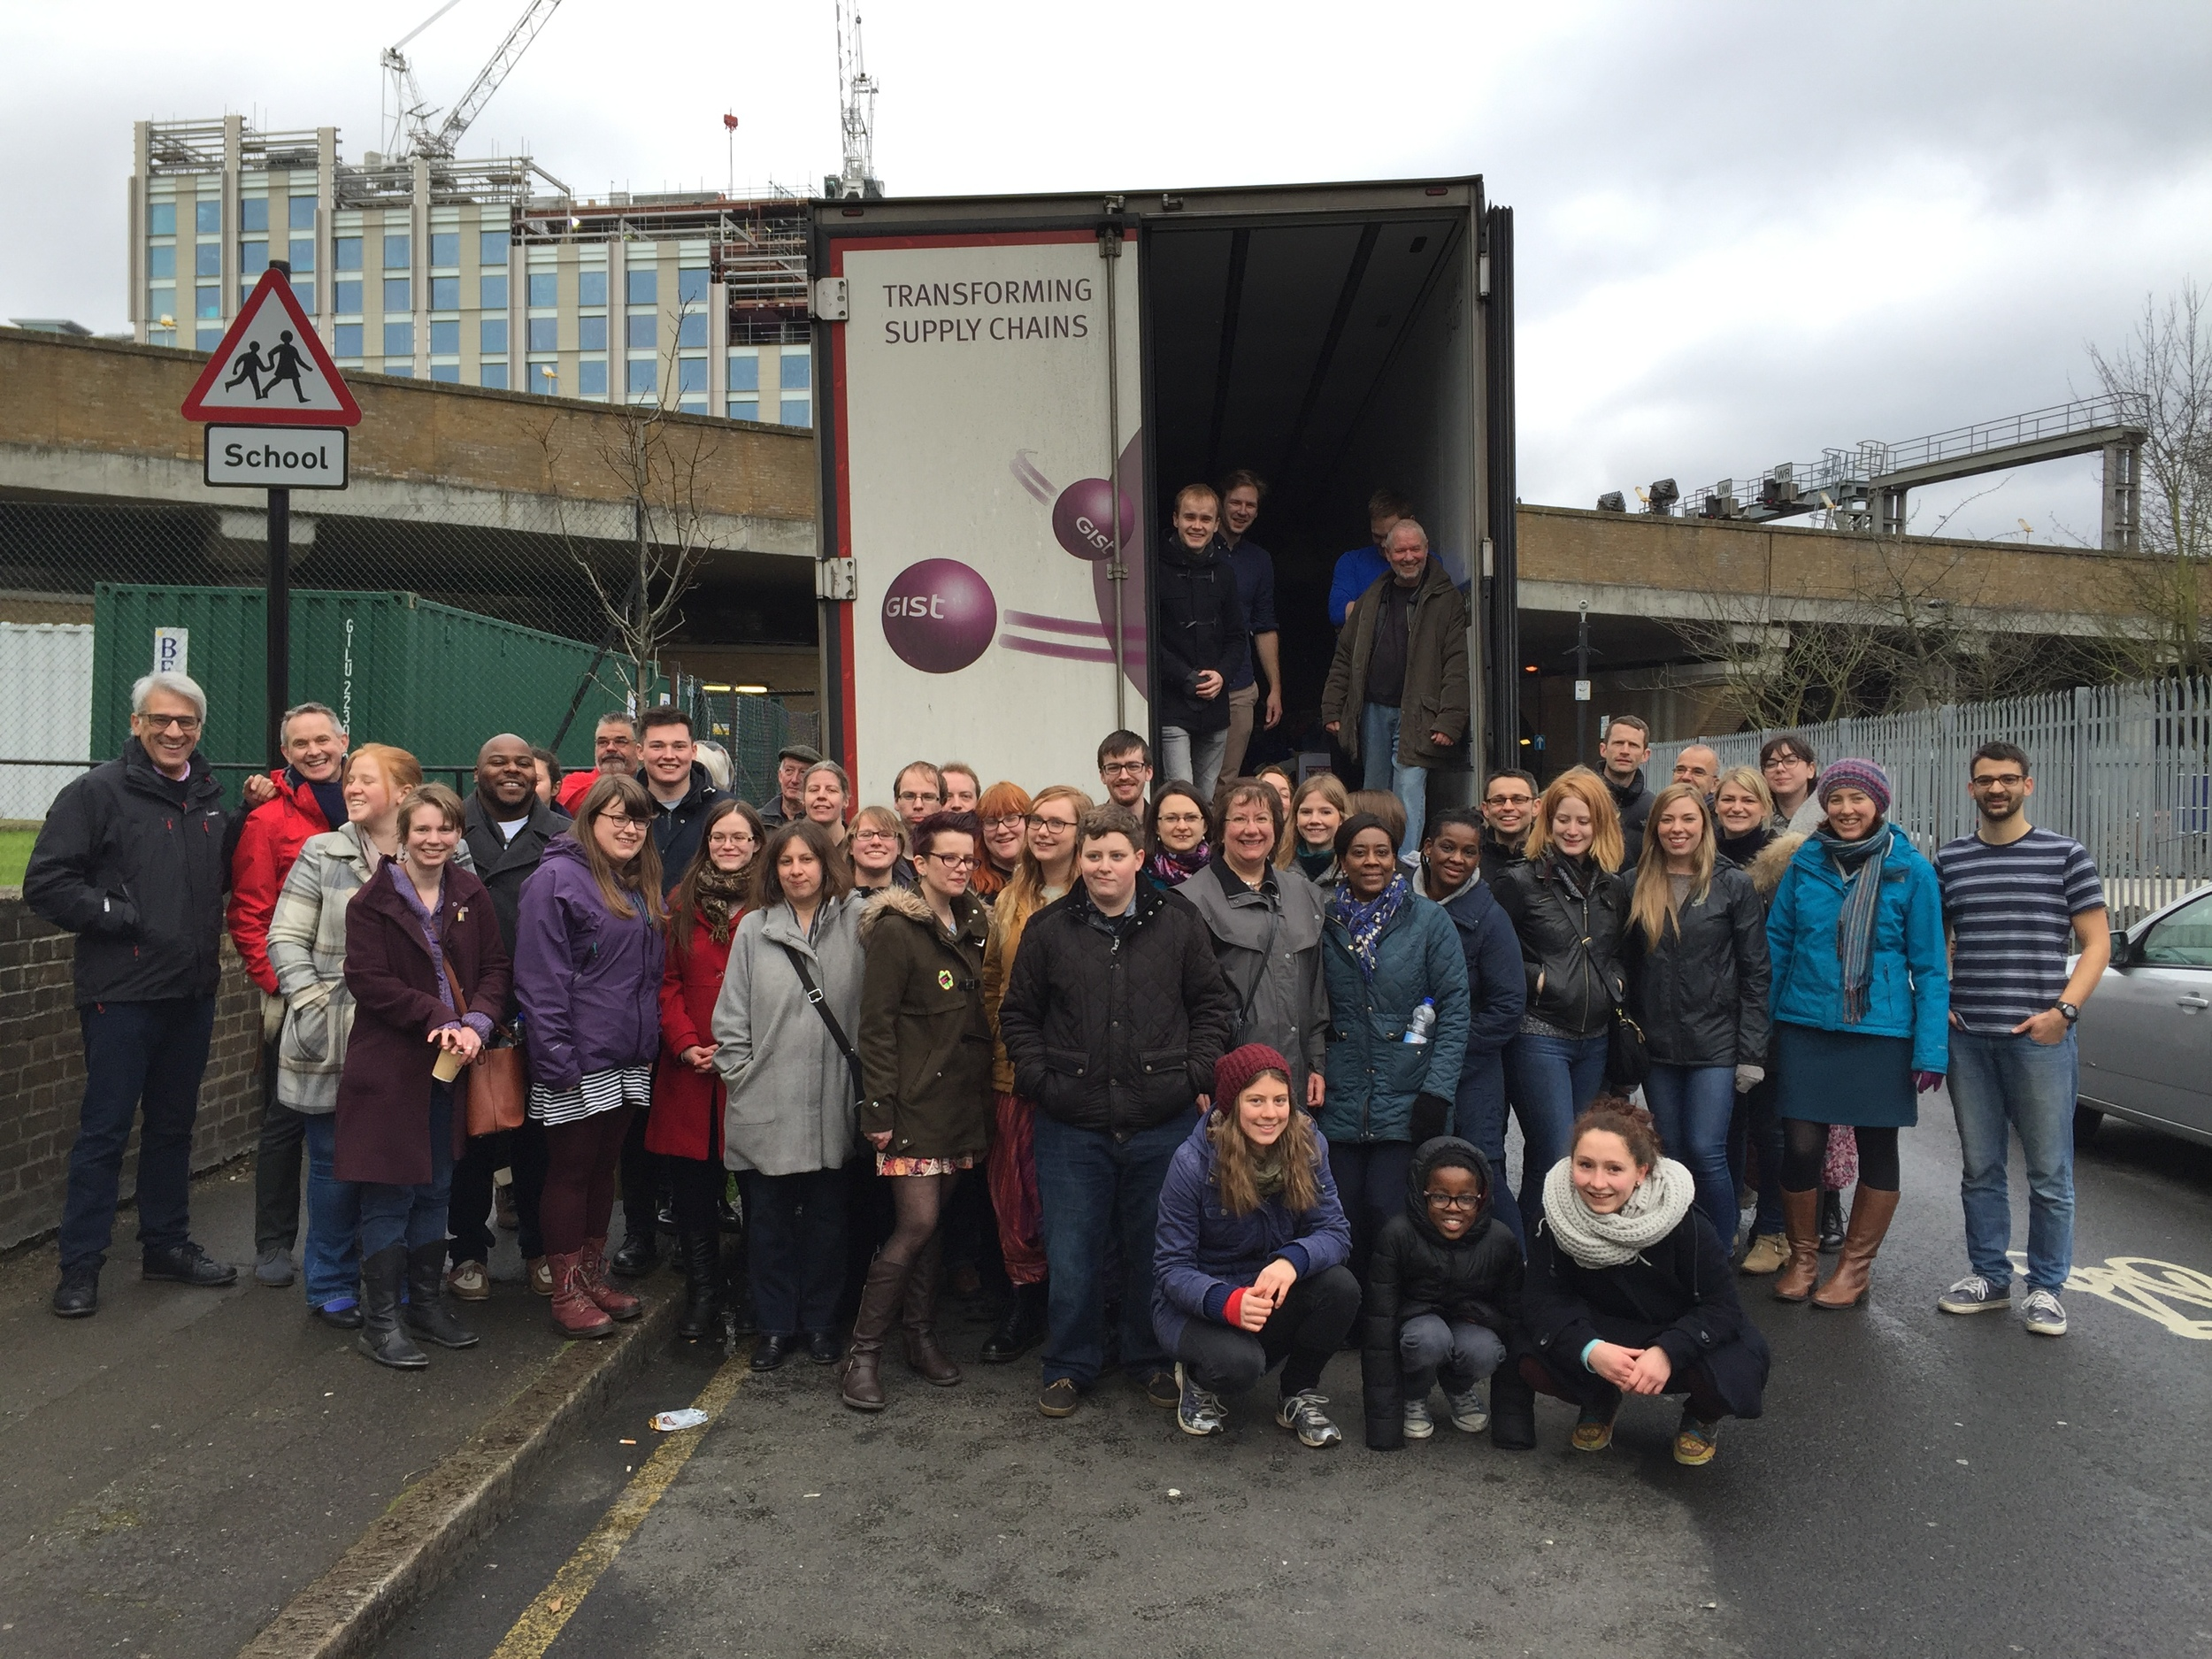 Our wonderful volunteers who helped to load the lorry last year; providing vital supplies to those in need in Calais. This year, we want to do more.